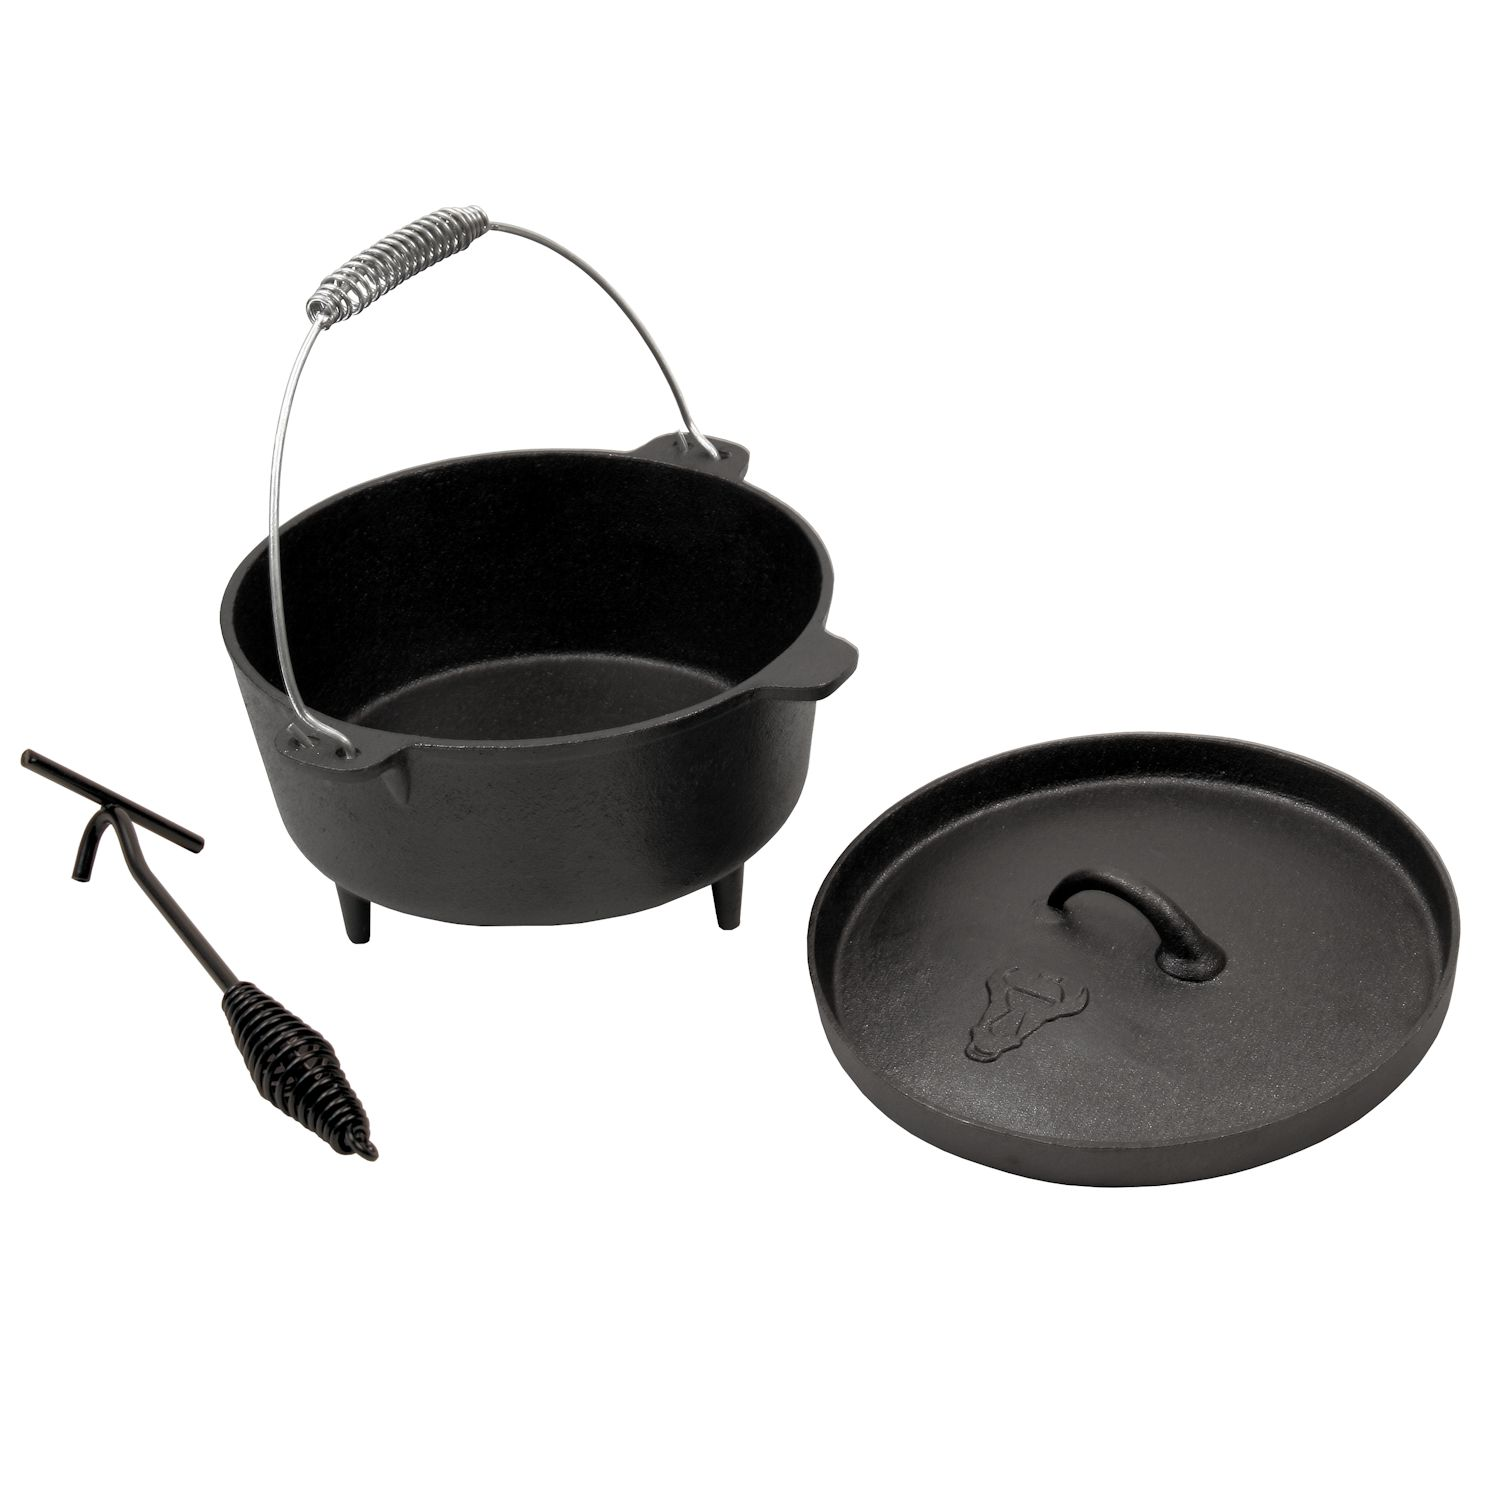 bbq toro dutch oven topf do4 5 gusseisen kochtopf 4 2 l gusstopf cs clever. Black Bedroom Furniture Sets. Home Design Ideas